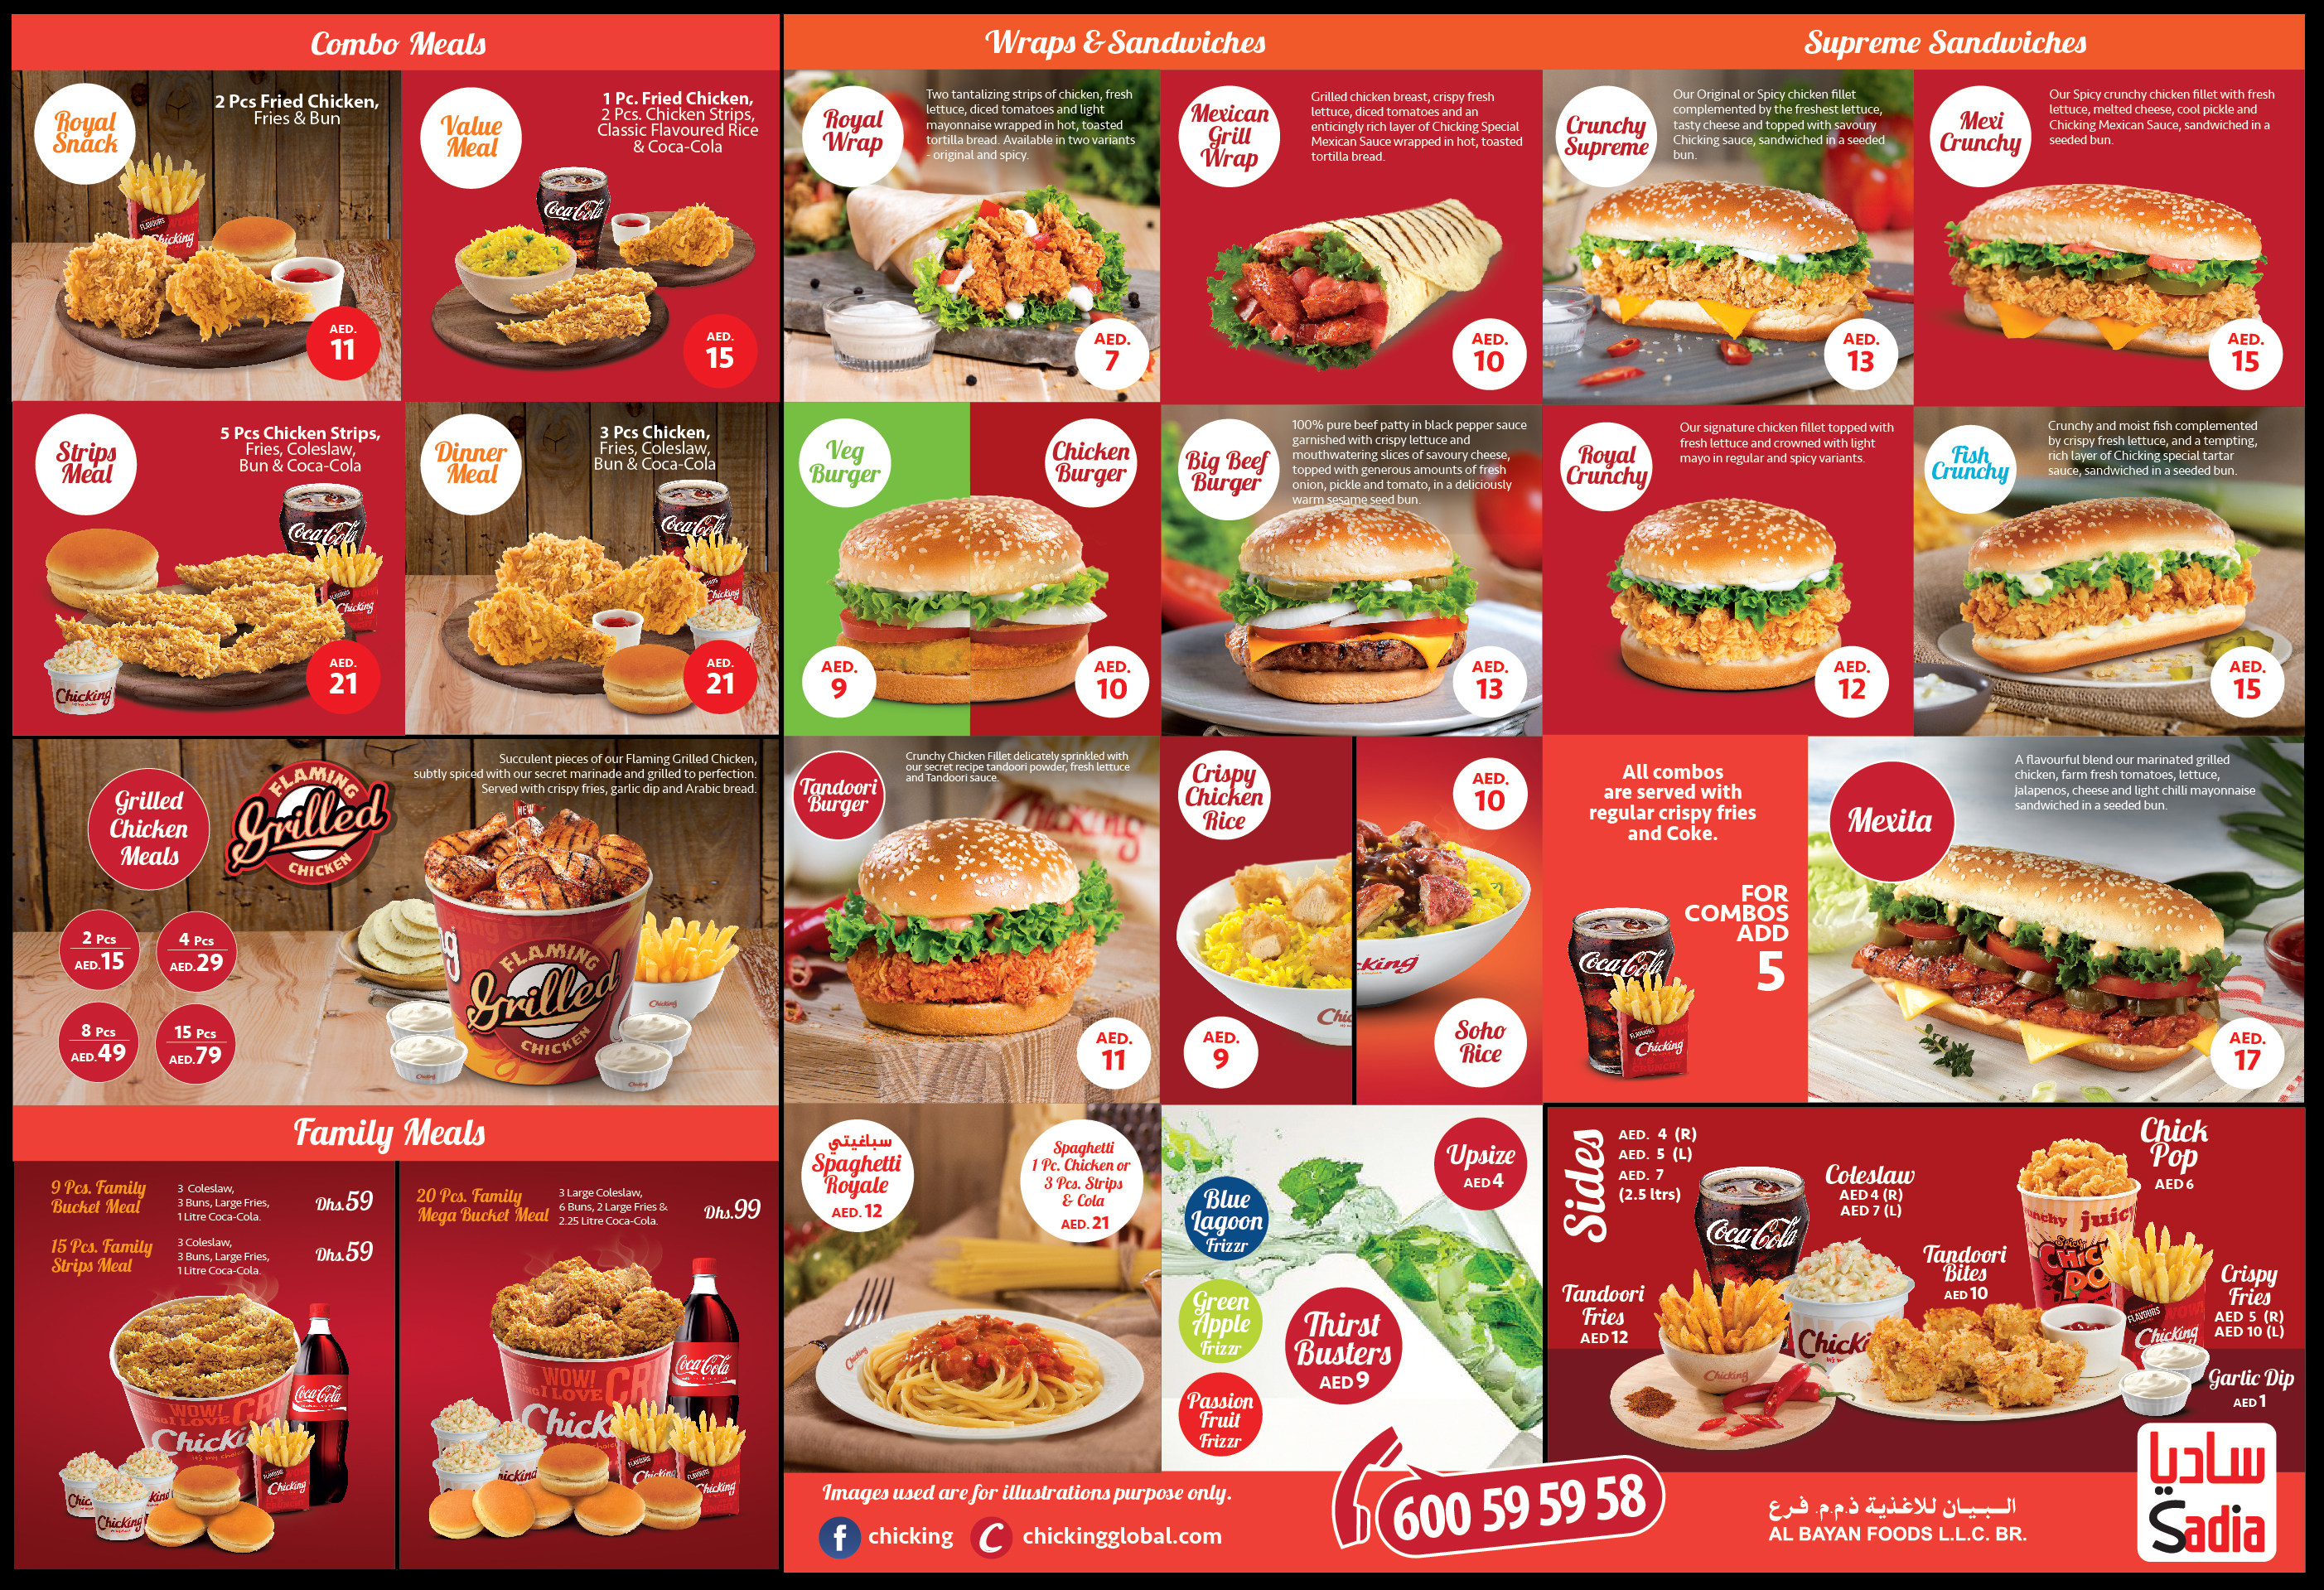 Chicking Rapidly Growing Fast Food Chain In The Region